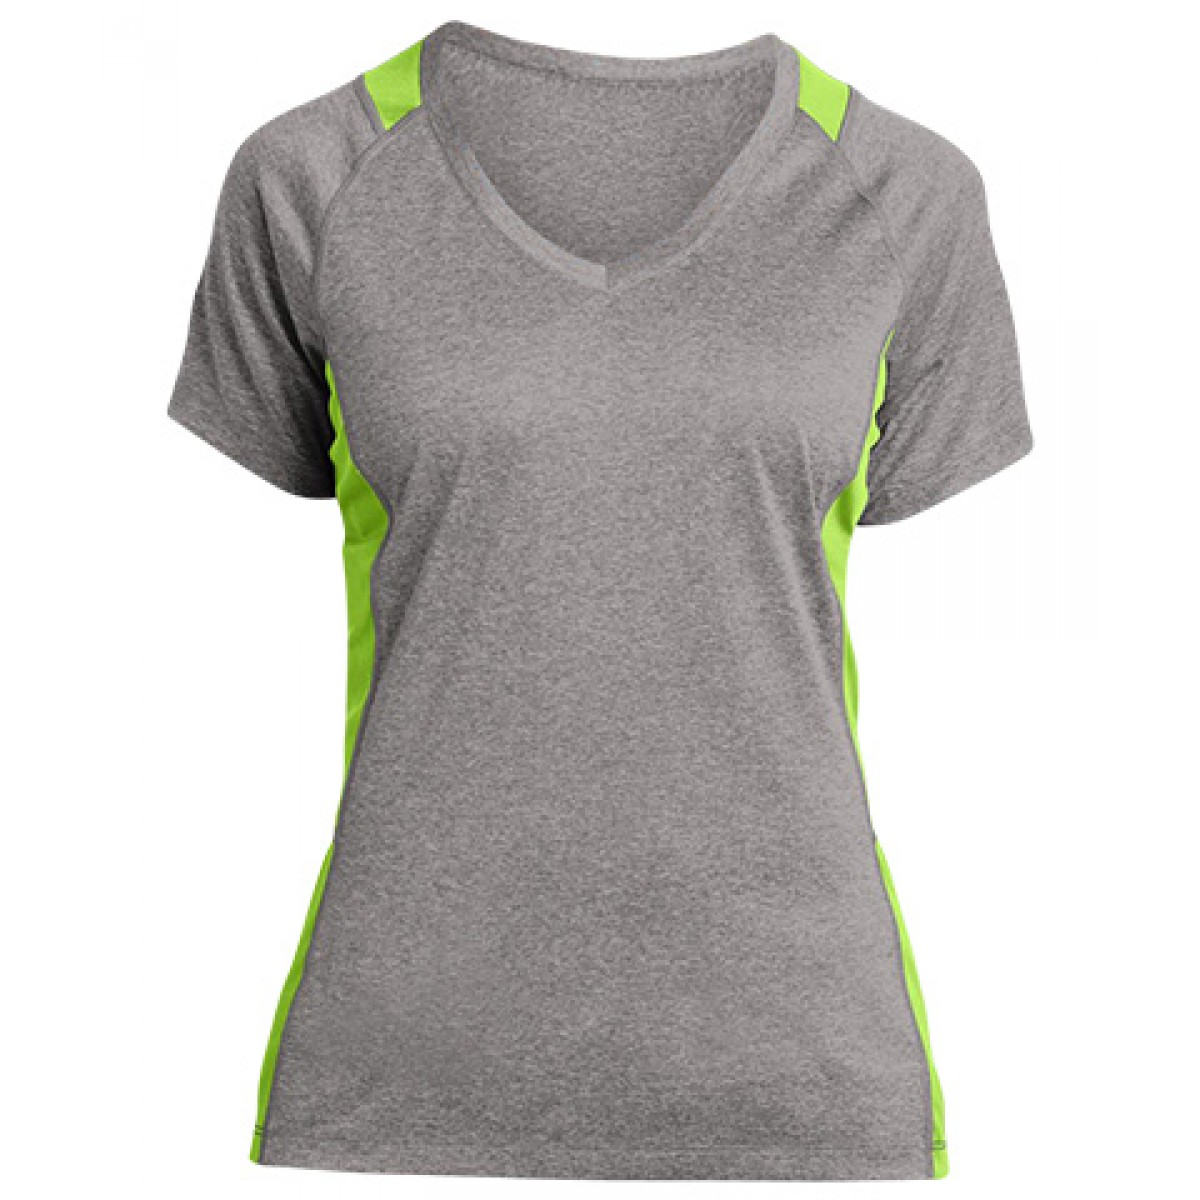 Ladies' Heather Colorblock Contender V-Neck Tee-Heather/Lime-L